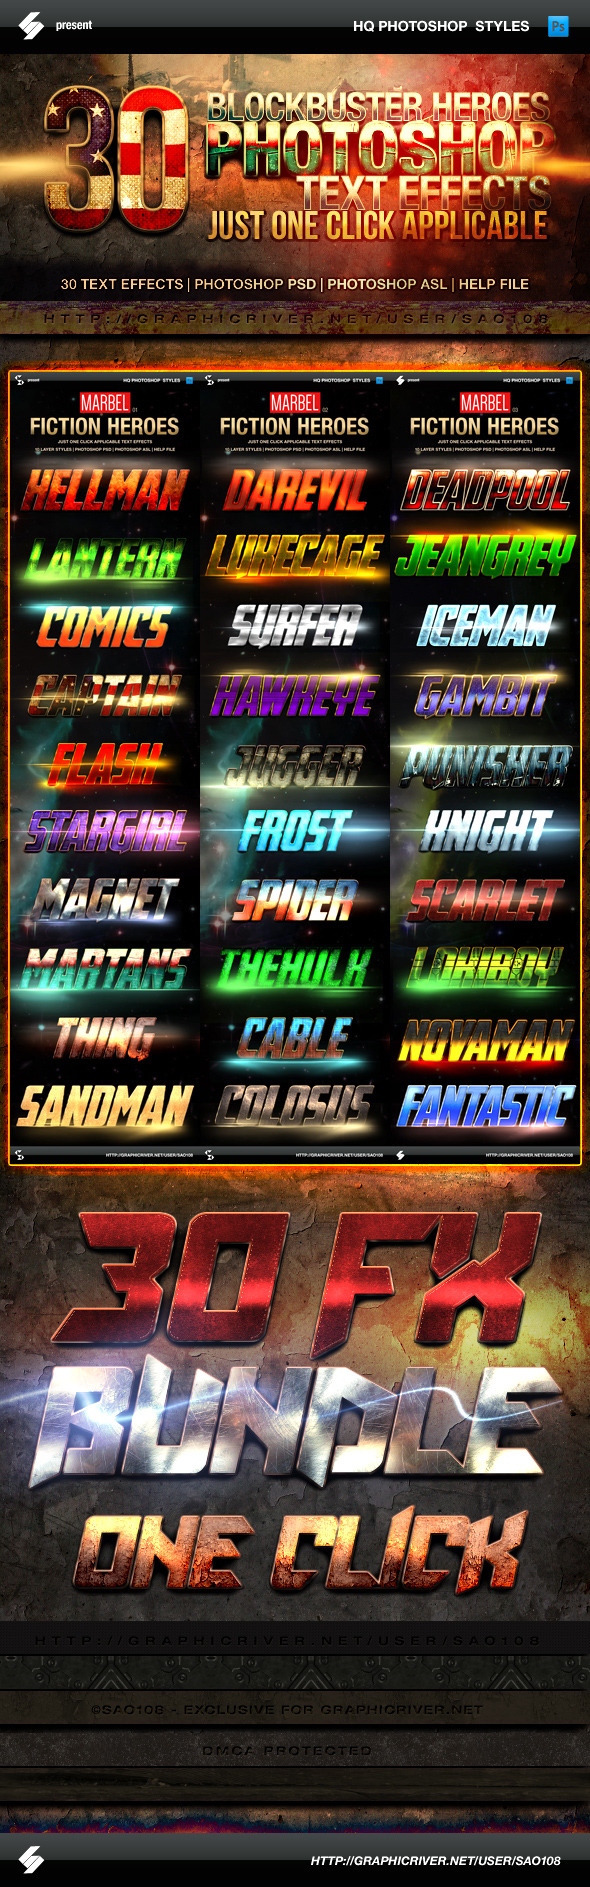 GraphicRiver Blockbuster Heroes Style Text Effects Bundle 11625367